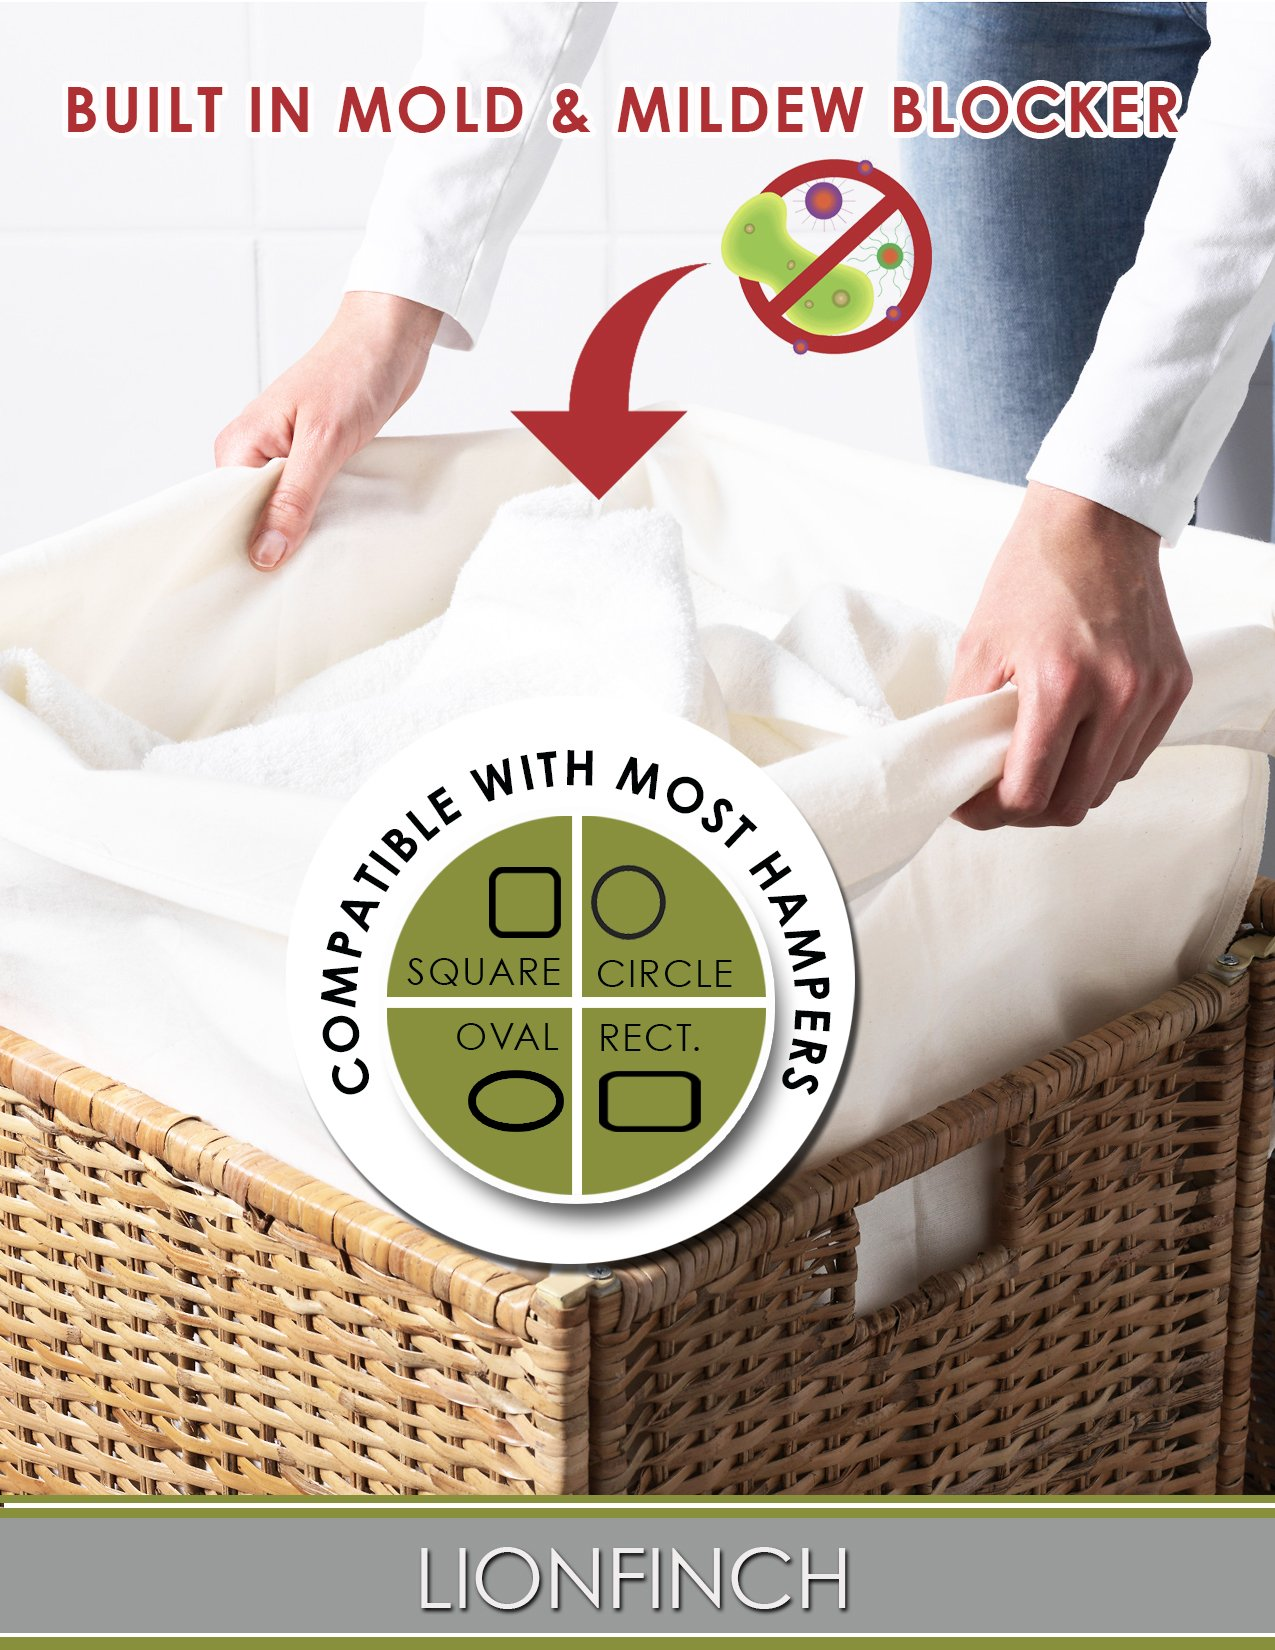 "Laundry Hamper Liner that BLOCKS Mold and Mildew. Extra Large 40"" Tall x 30"" Wide. Bright White Super Soft Canvas. Fits 5 Loads of Laundry. Easy to Wash and Dry. Proudly Made in California!"